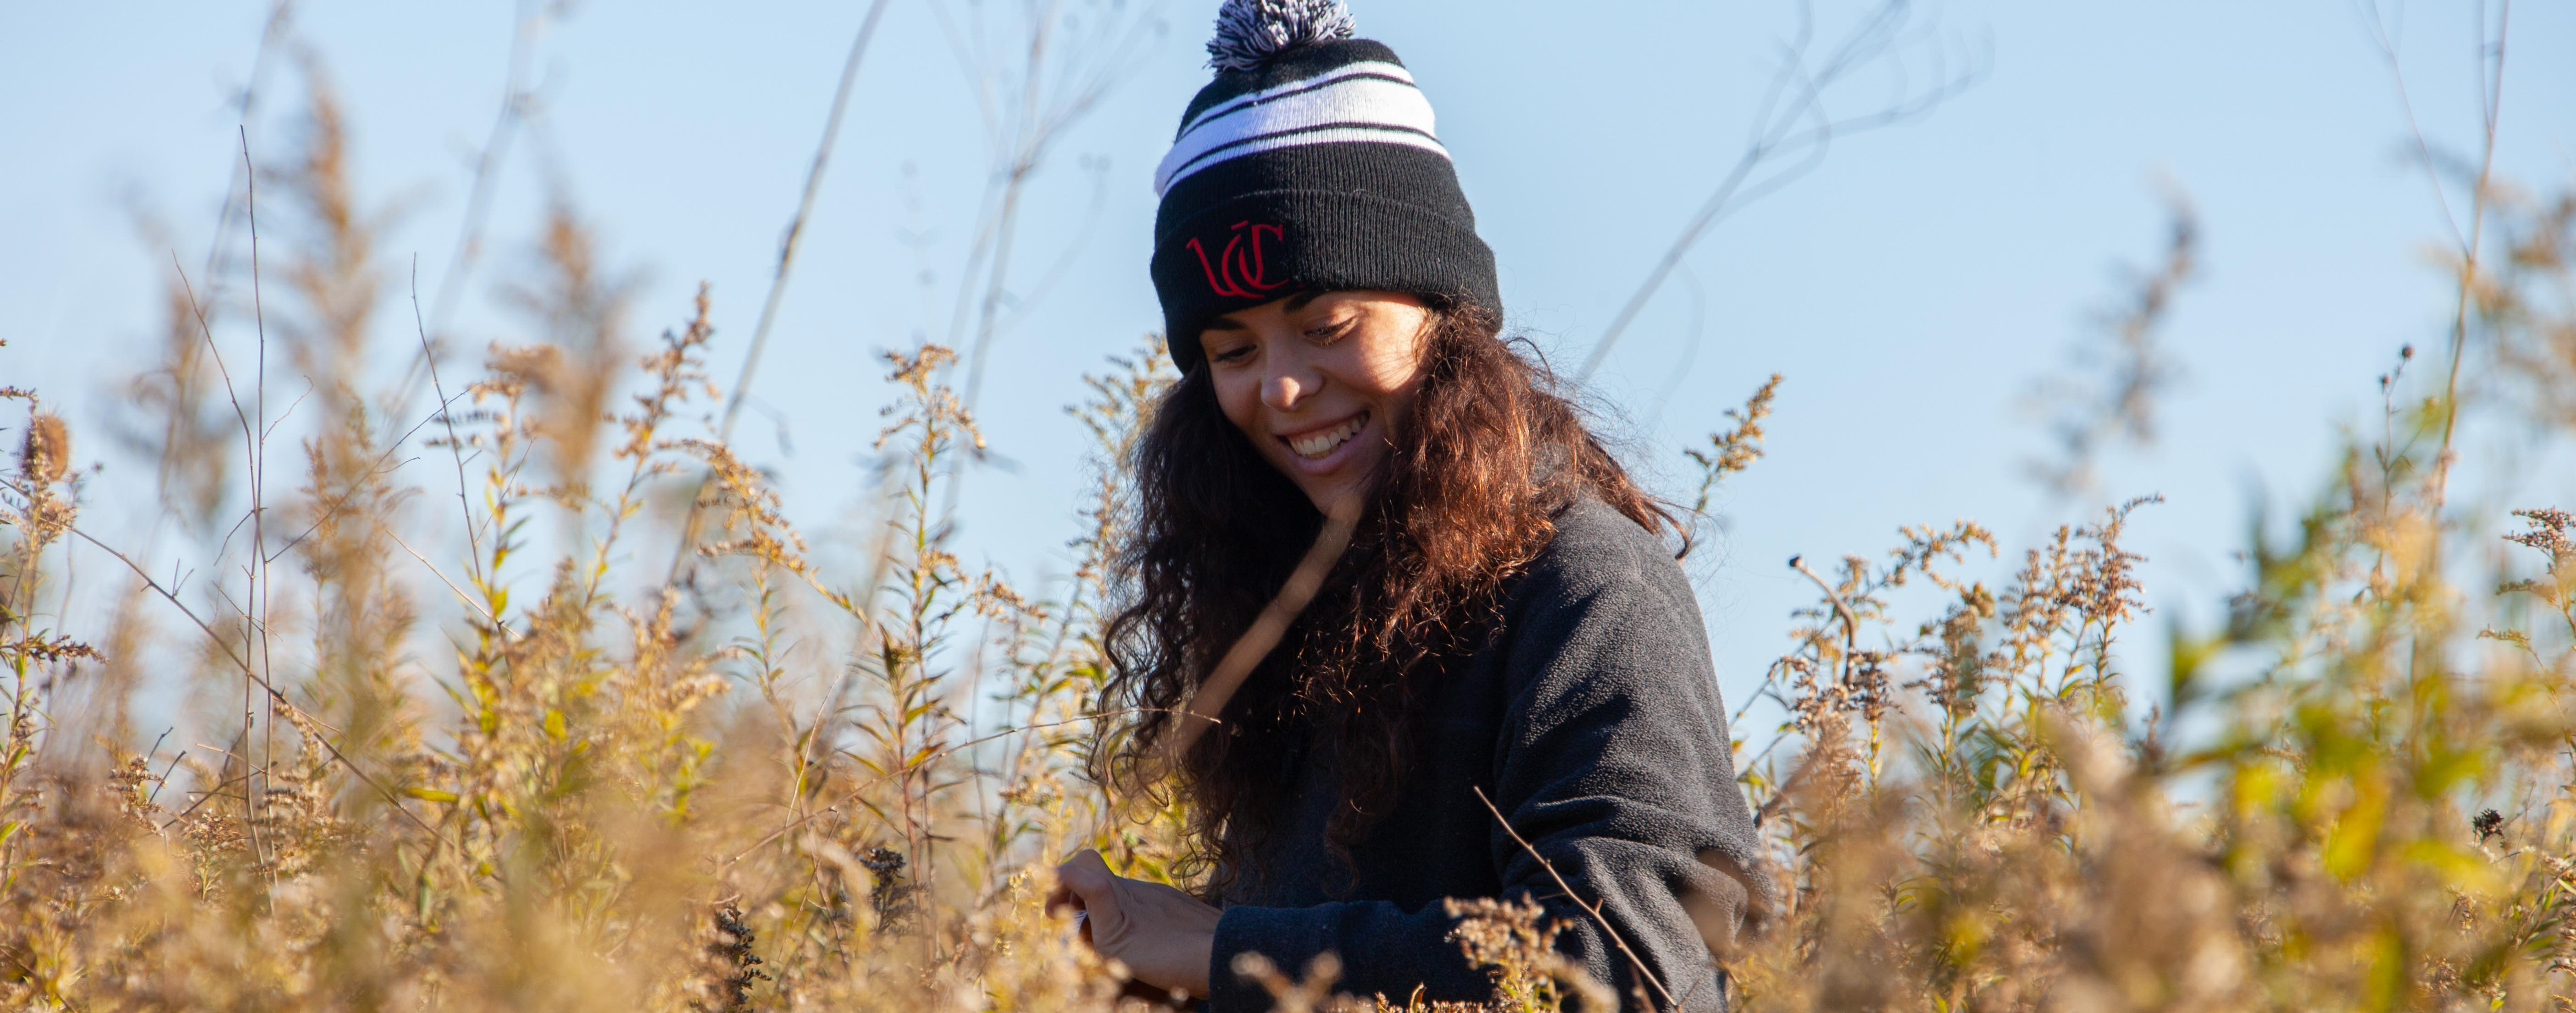 A UC botany student wearing a UC knit cap smiles in a field of yellow goldenrod.